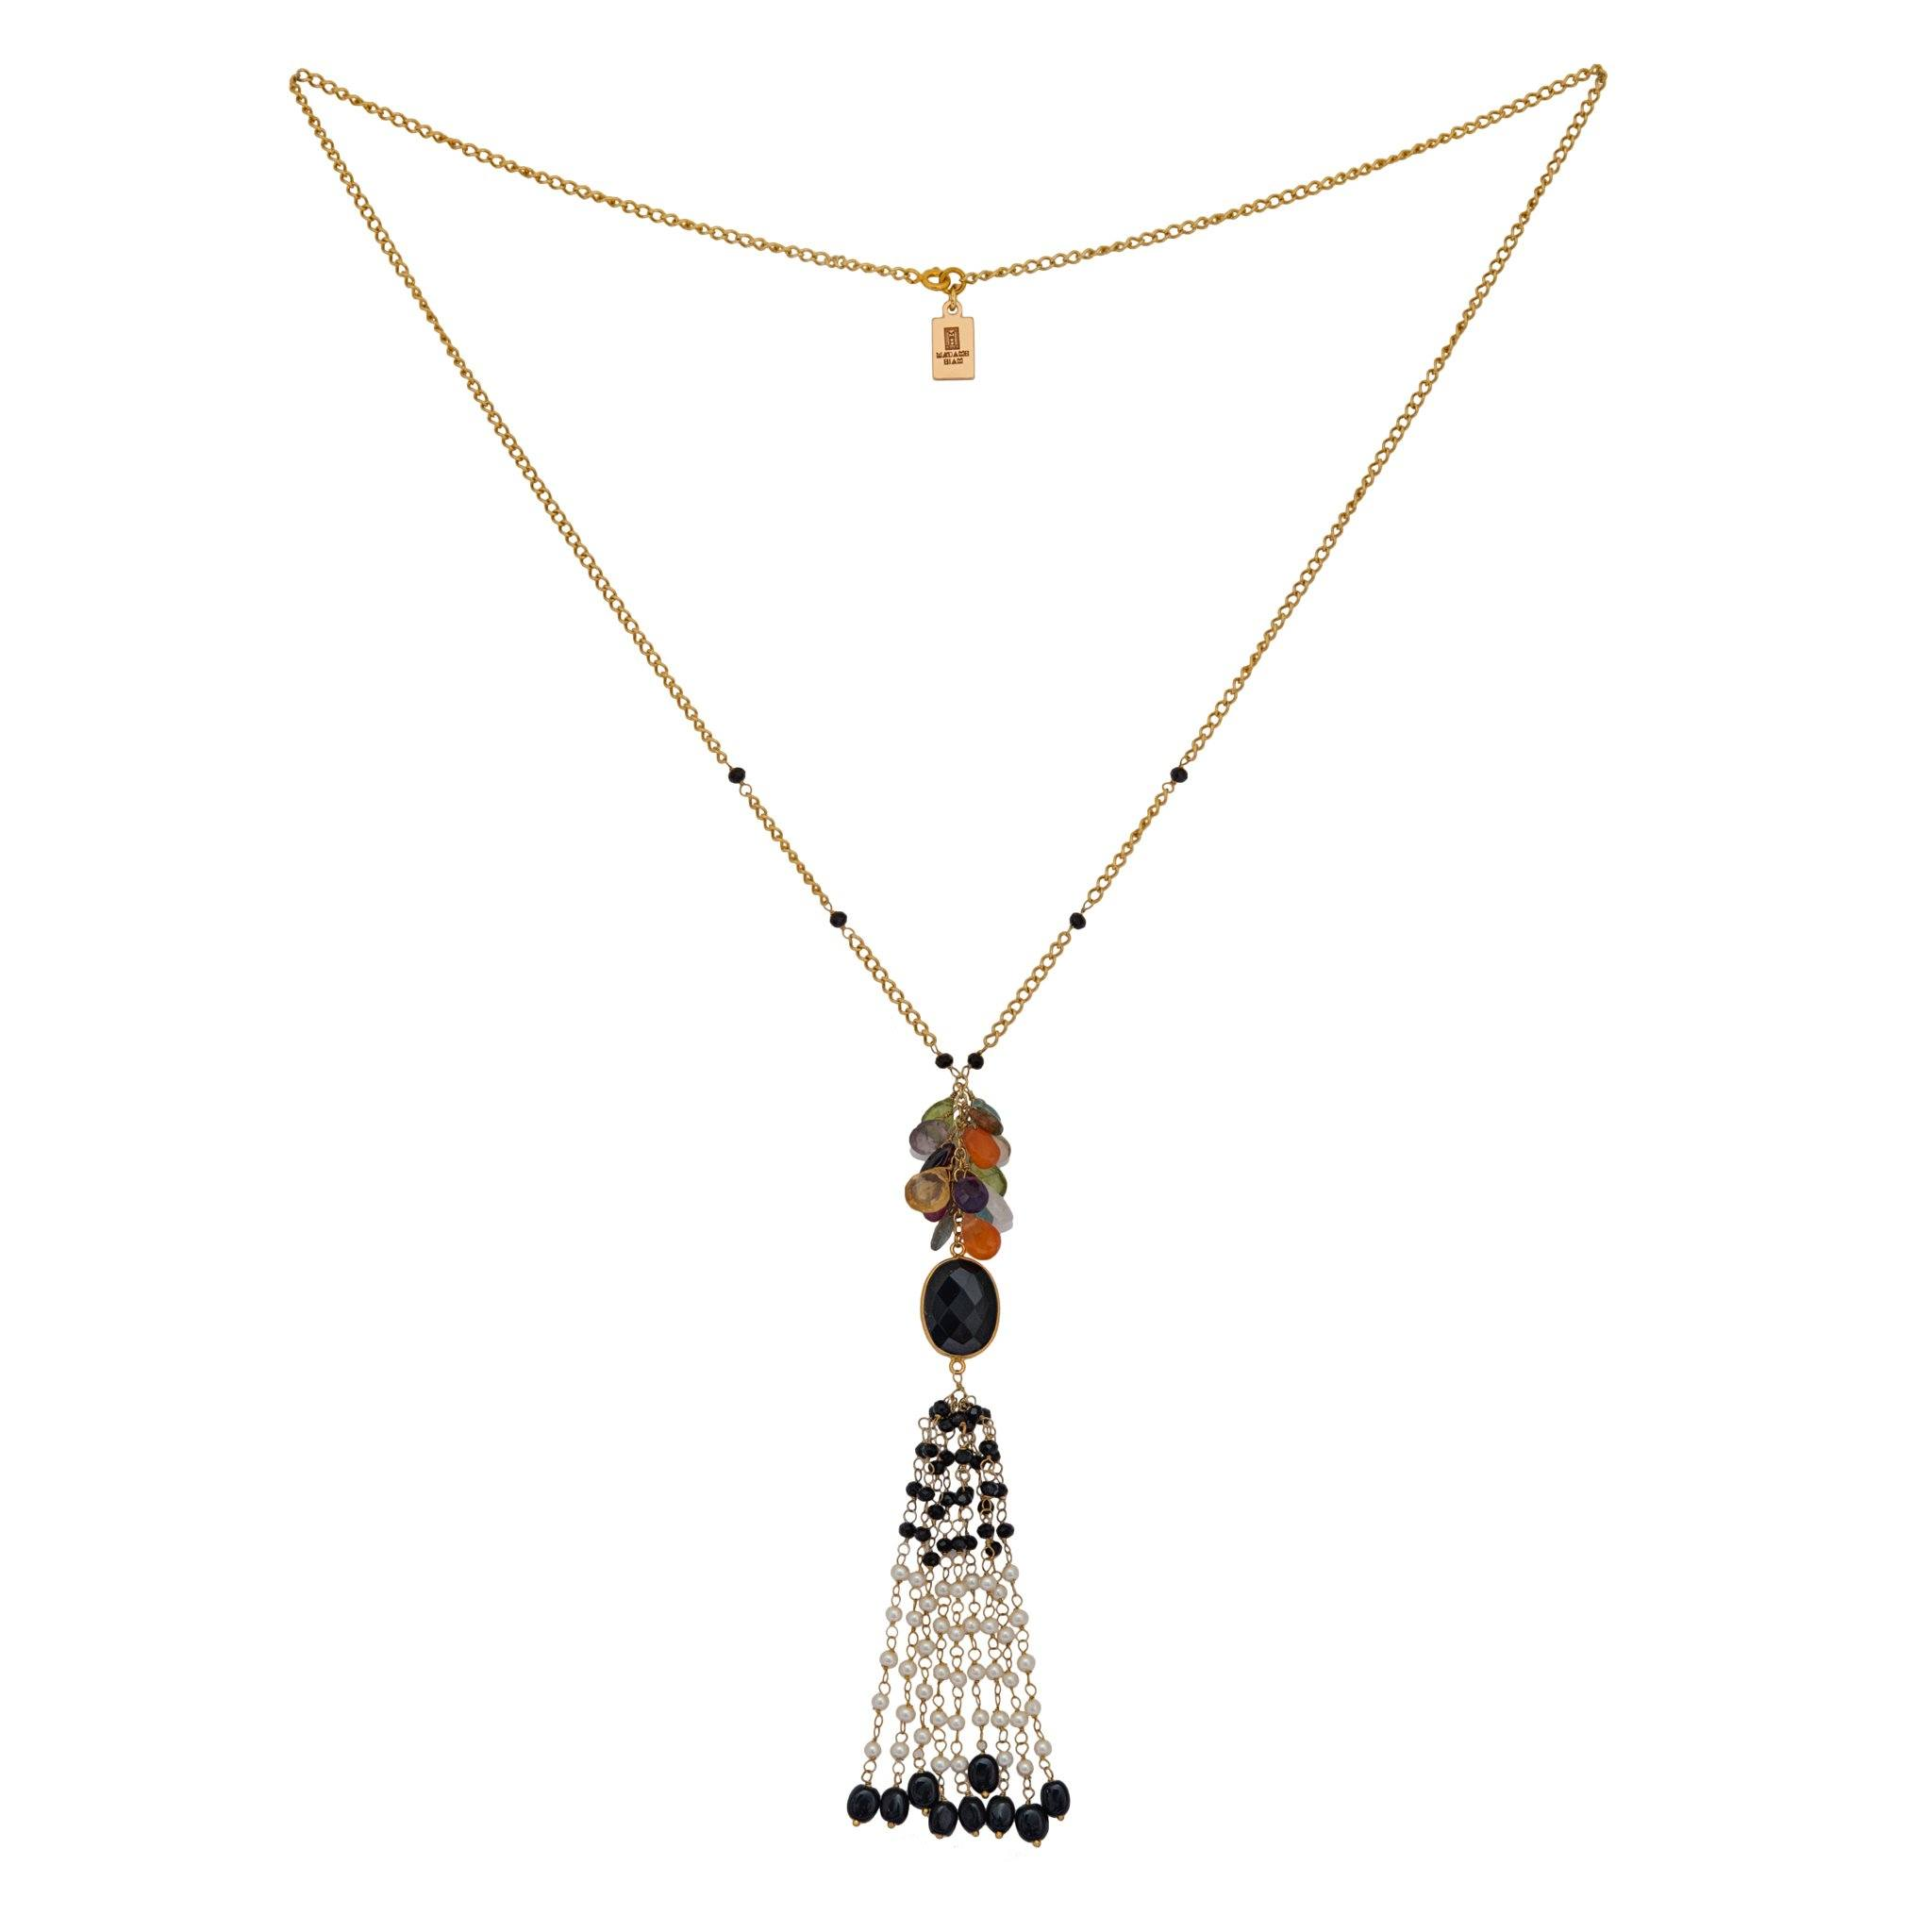 MAY black onyx tassel necklace - MadamSiam